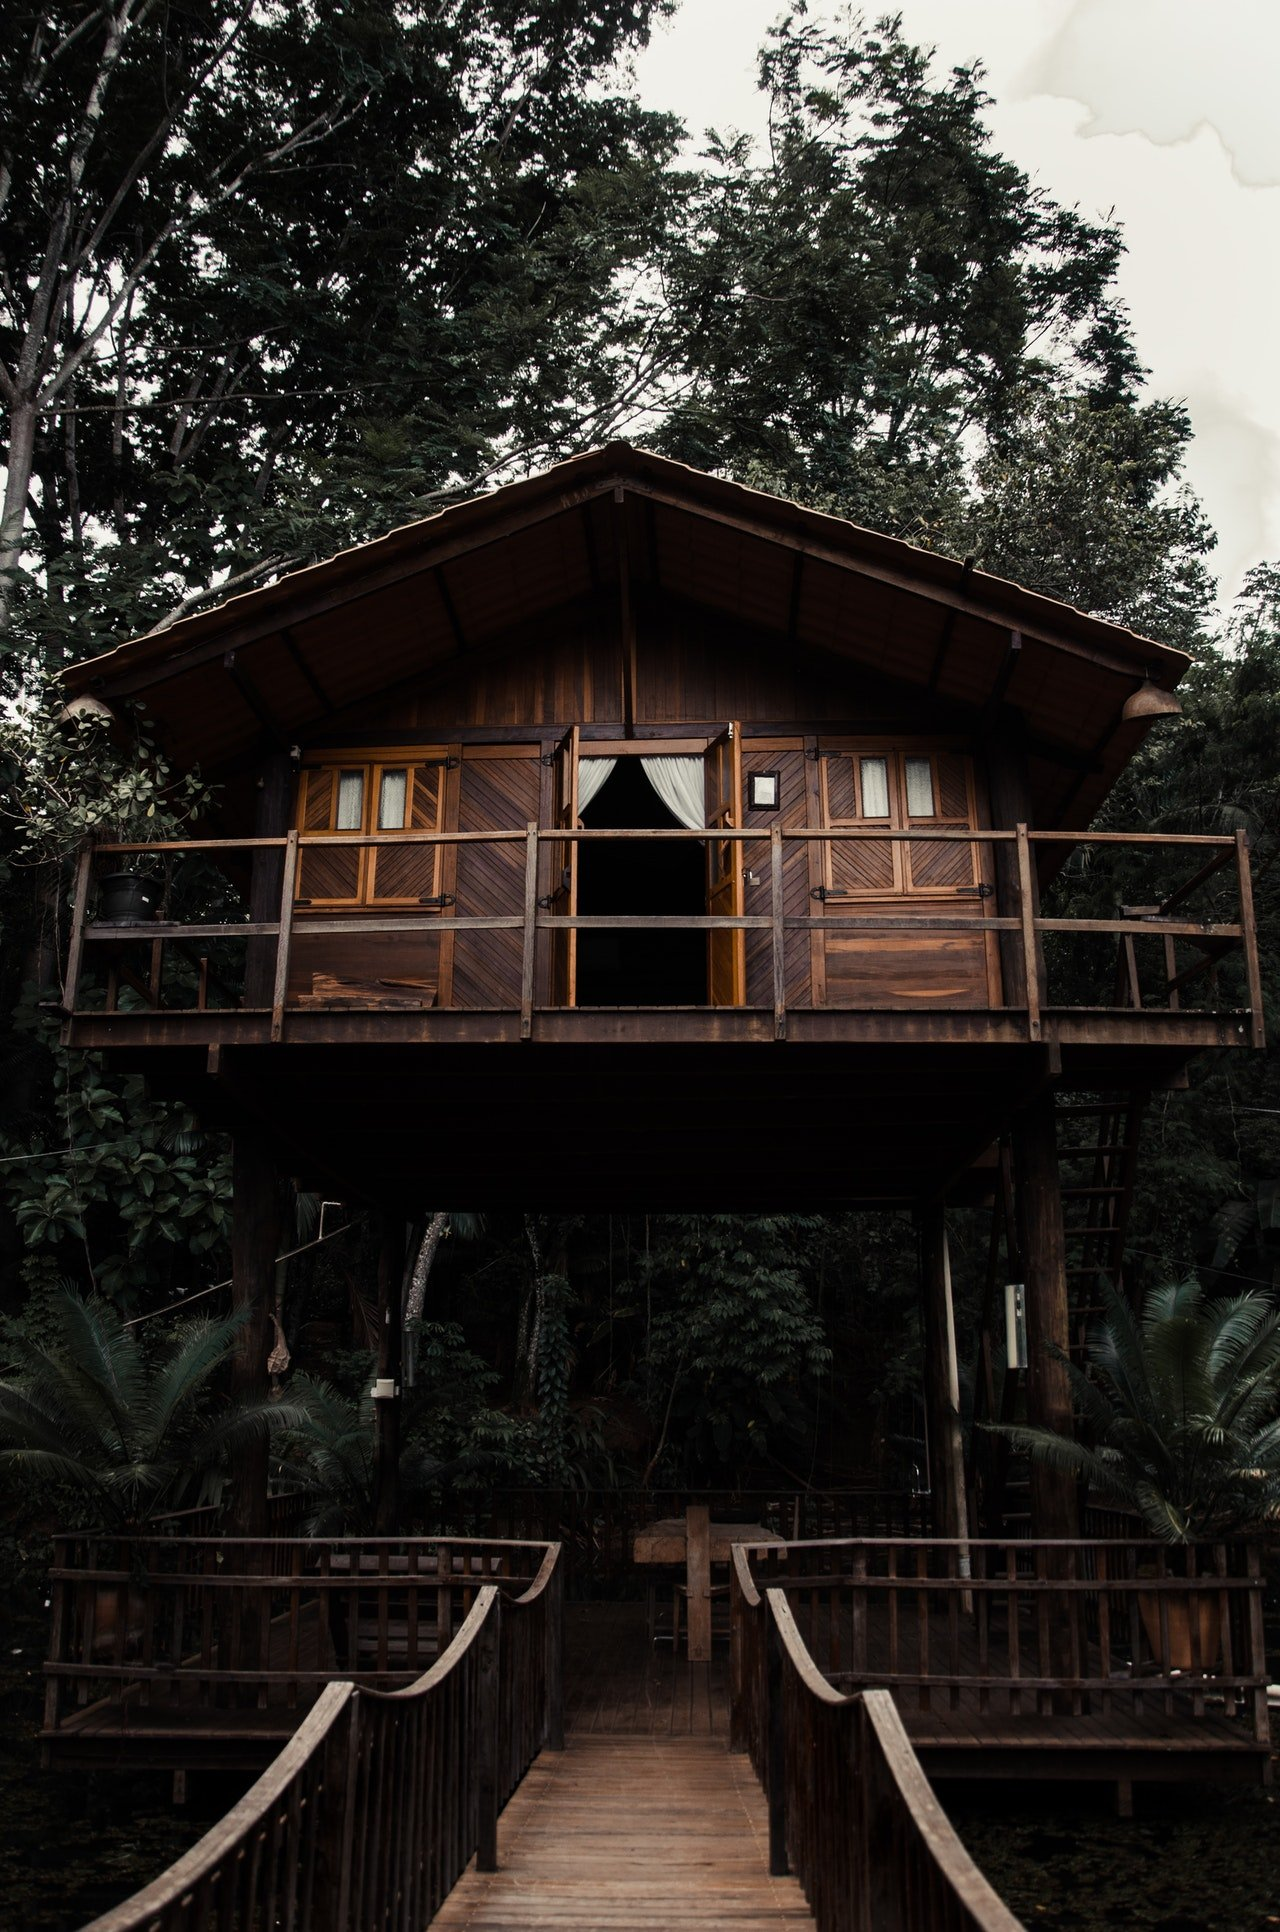 Brandon decided to open a treehouse hotel.   Source: Pexels